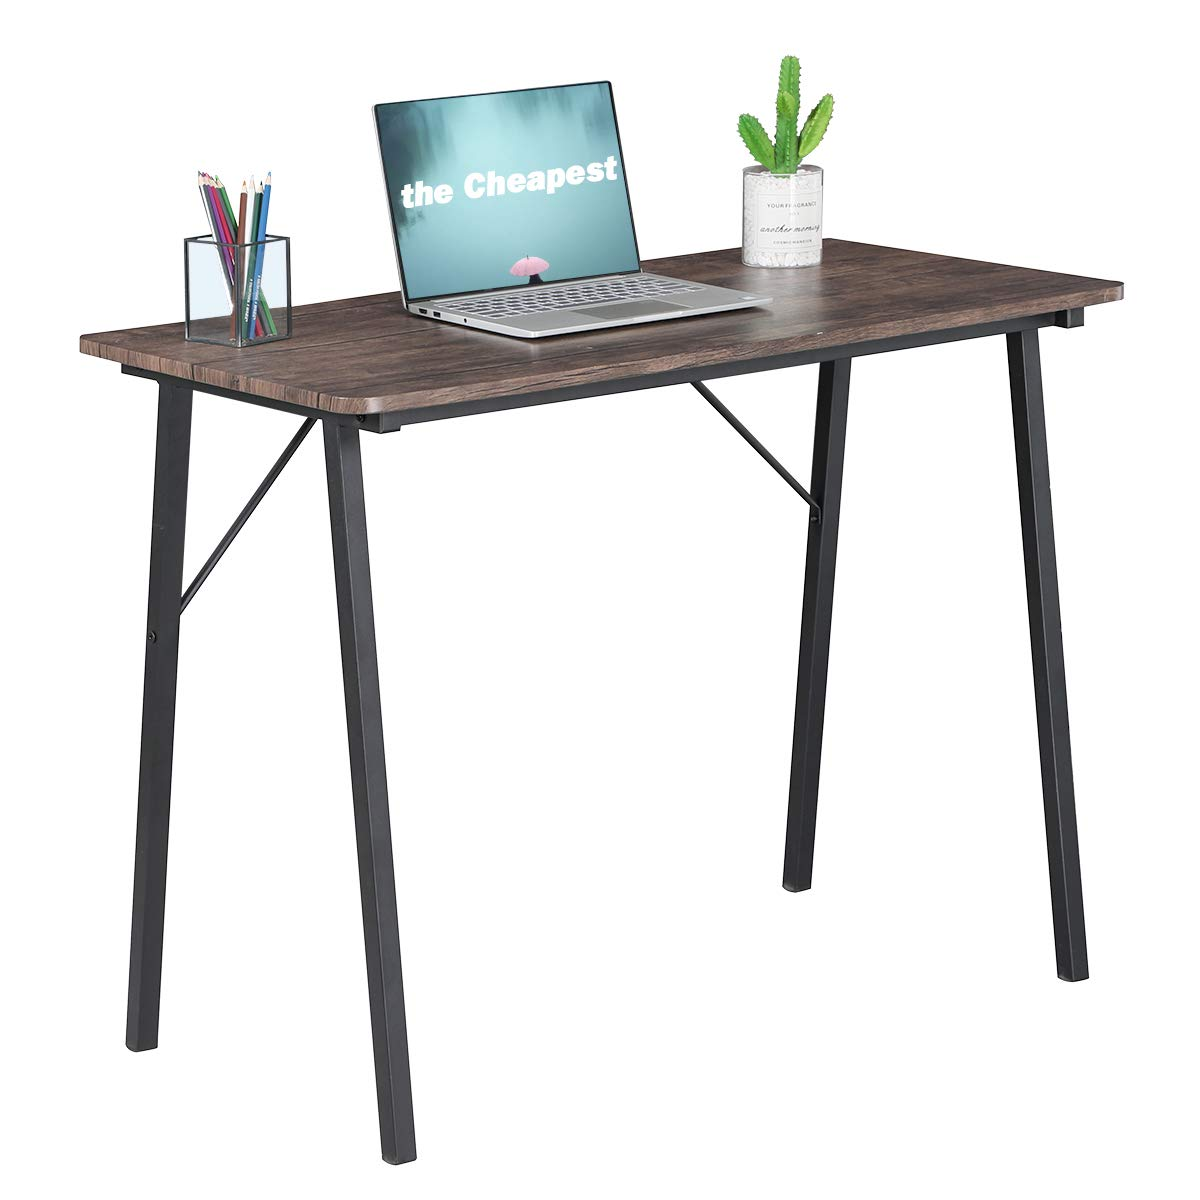 Simple Computer Desk Modern Wood Study Writing Table Small Industrial Home Office Work Desk with Metal Legs,39.4 x 18.9 x 29.1 inch, Walnut and Black